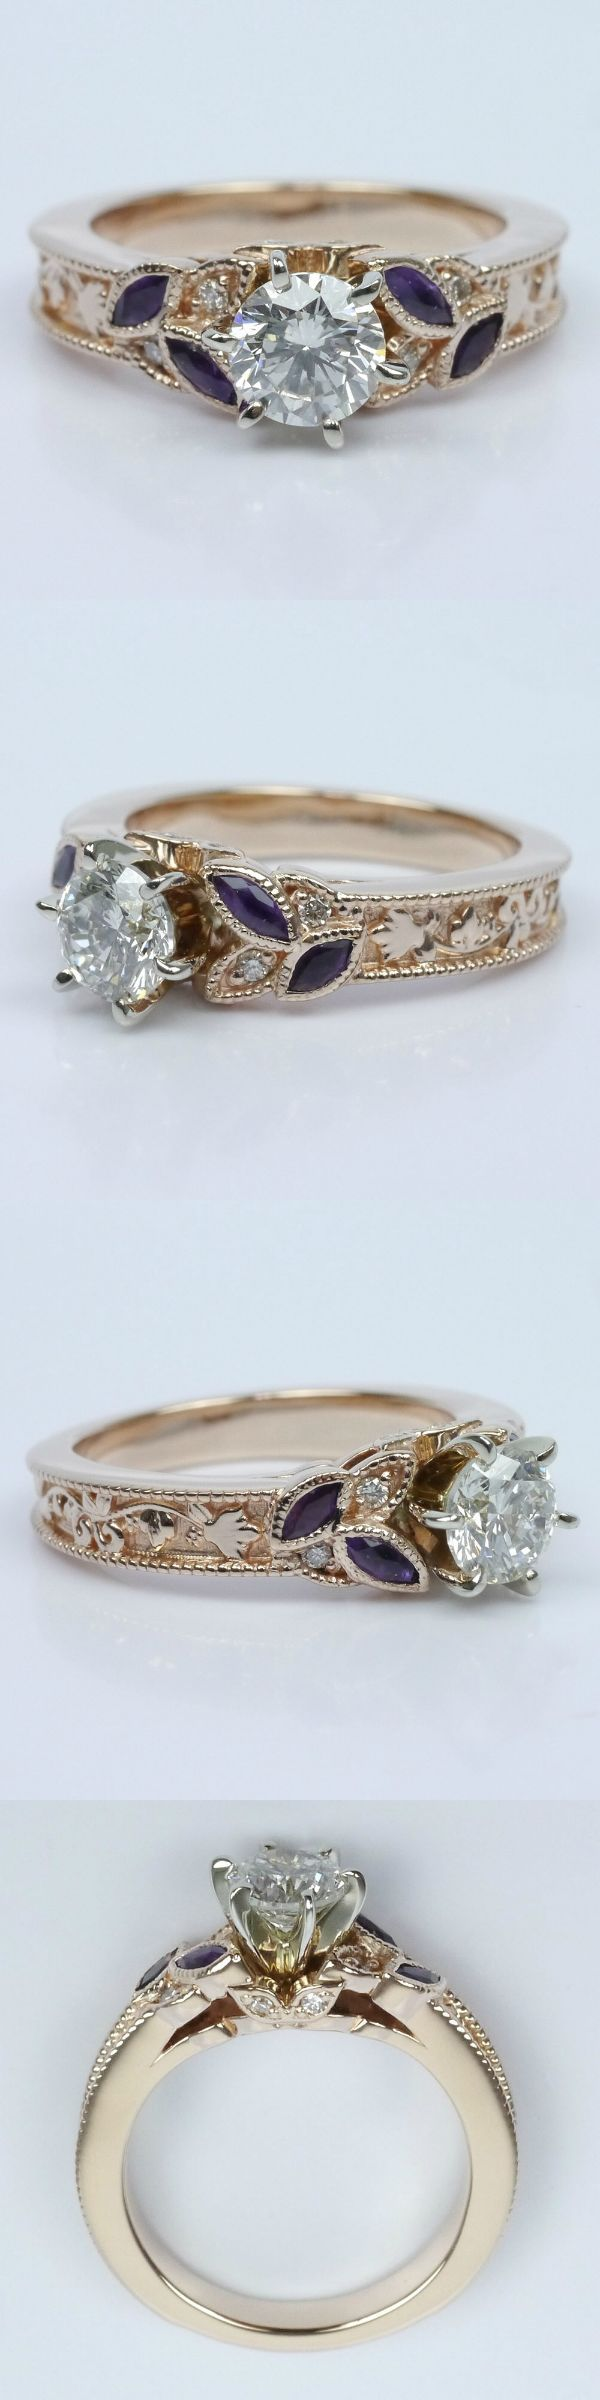 Vintage Diamond And Amethyst Floral Engagement Ring! Round 50 Ctw Color: L